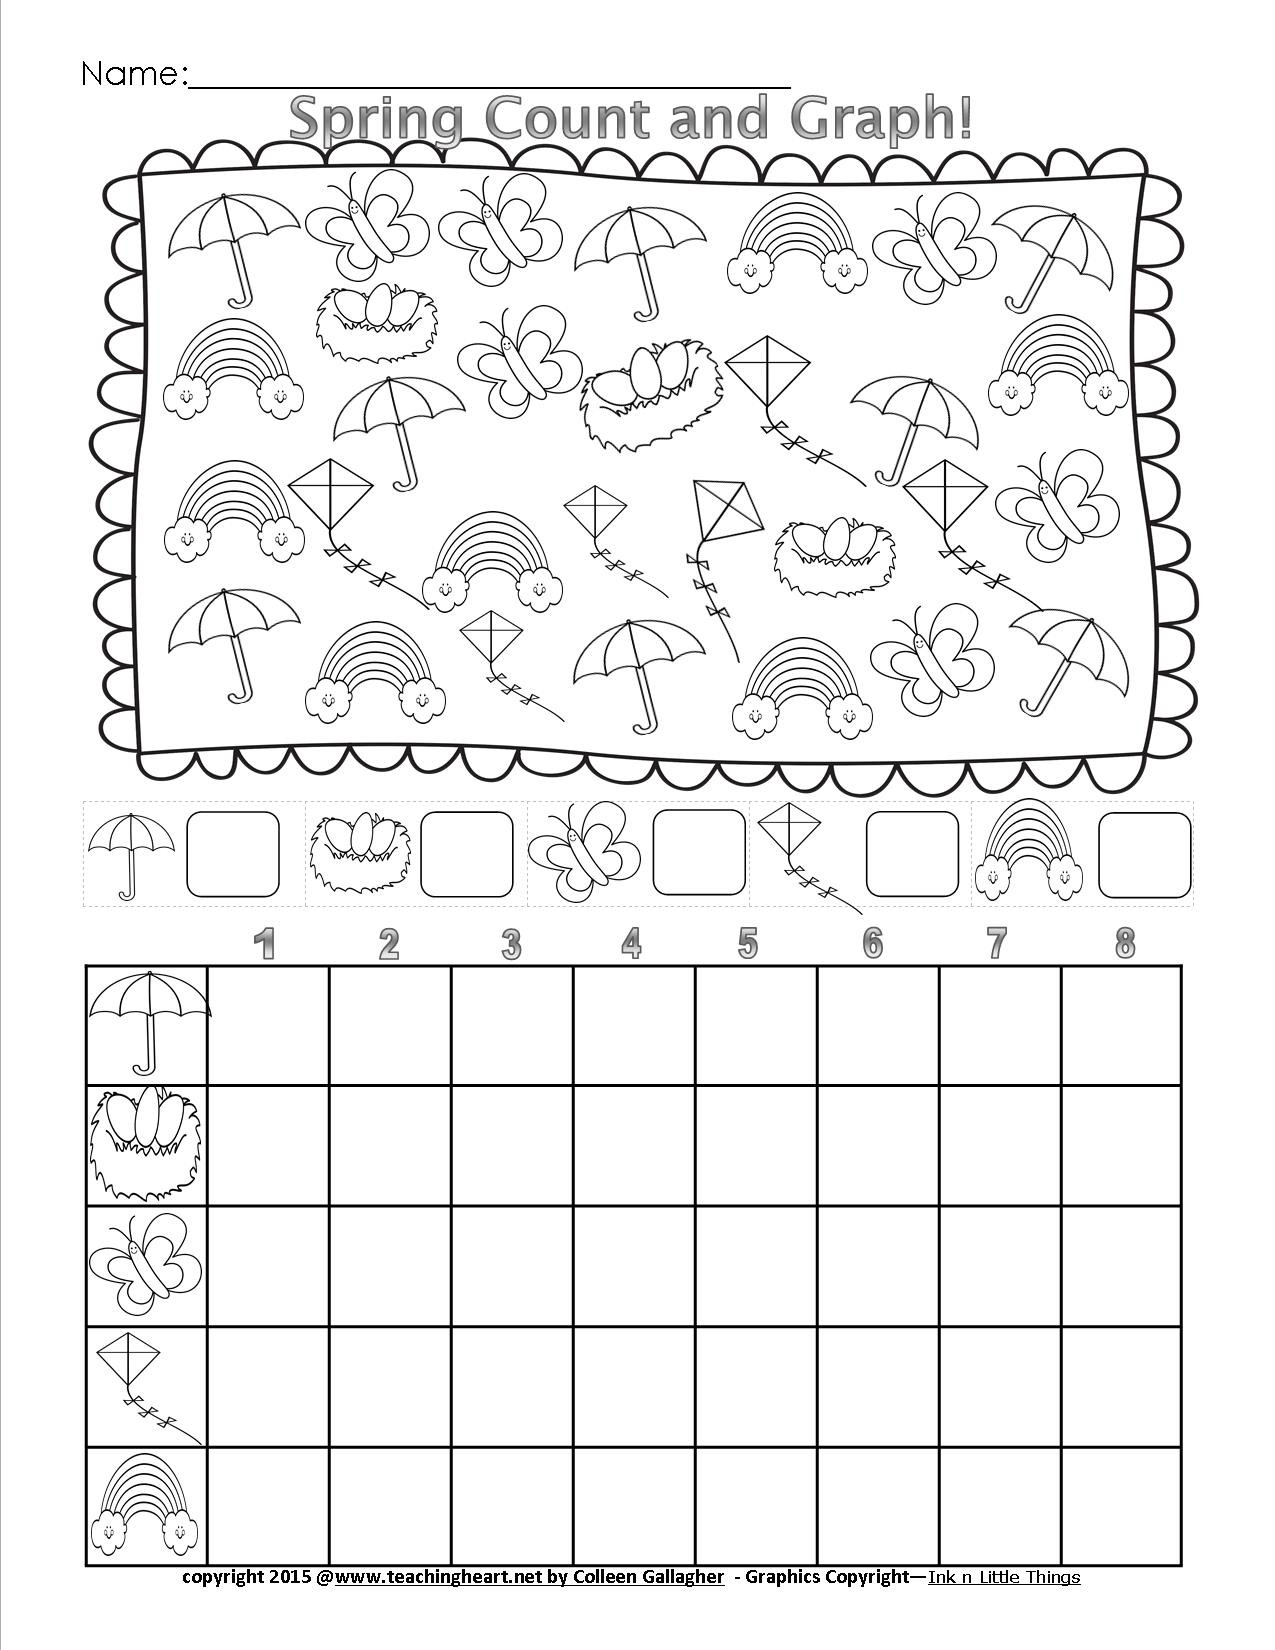 First Grade Graphing Worksheets Spring Count and Graph – Free – Teaching Heart Blog